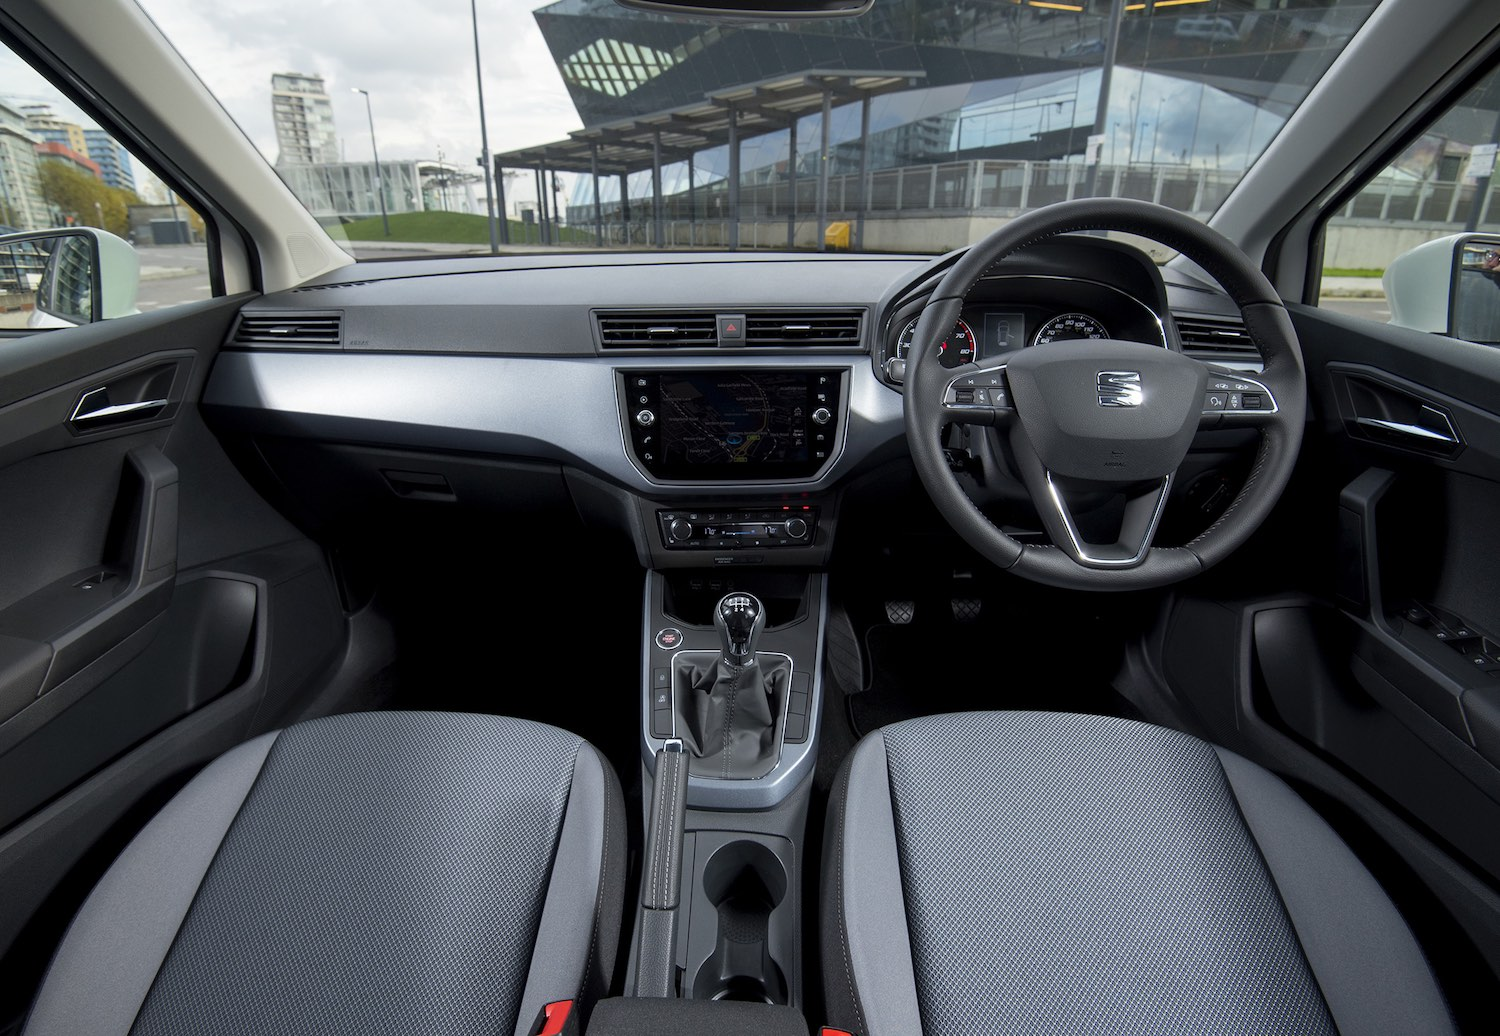 SEAT Arona interior (The Car Expert)